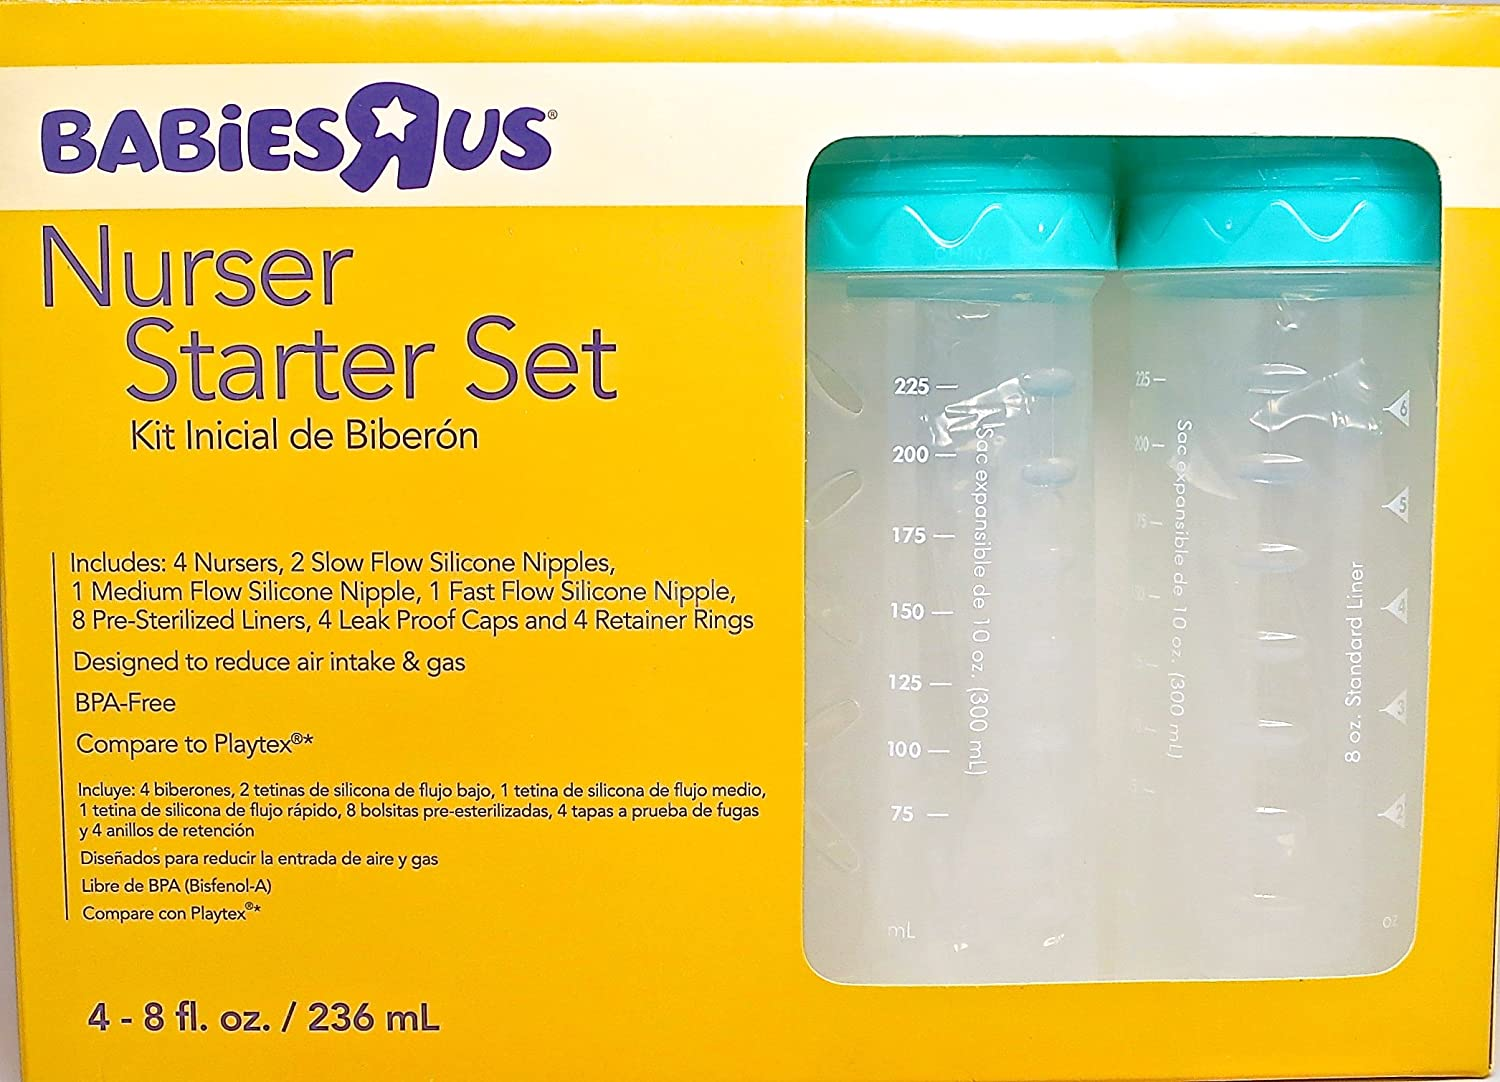 Amazon.com : Baby Bottle Starter Kit - Bundle of 2 Items: Babies R Us Nurser Starter Set and Extra Package of 2 Silicon Nipples : Baby